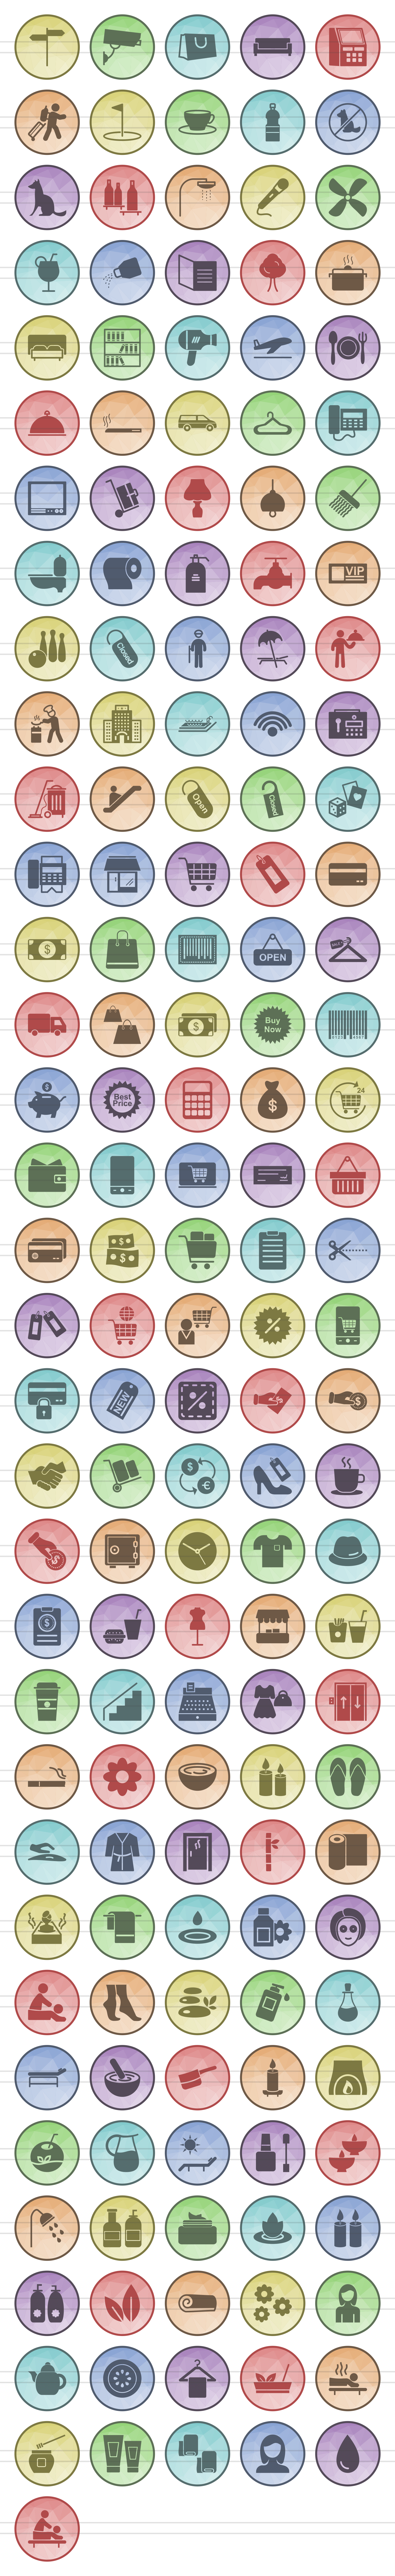 166 Hotel & Relaxation Filled Low Poly Icons example image 2